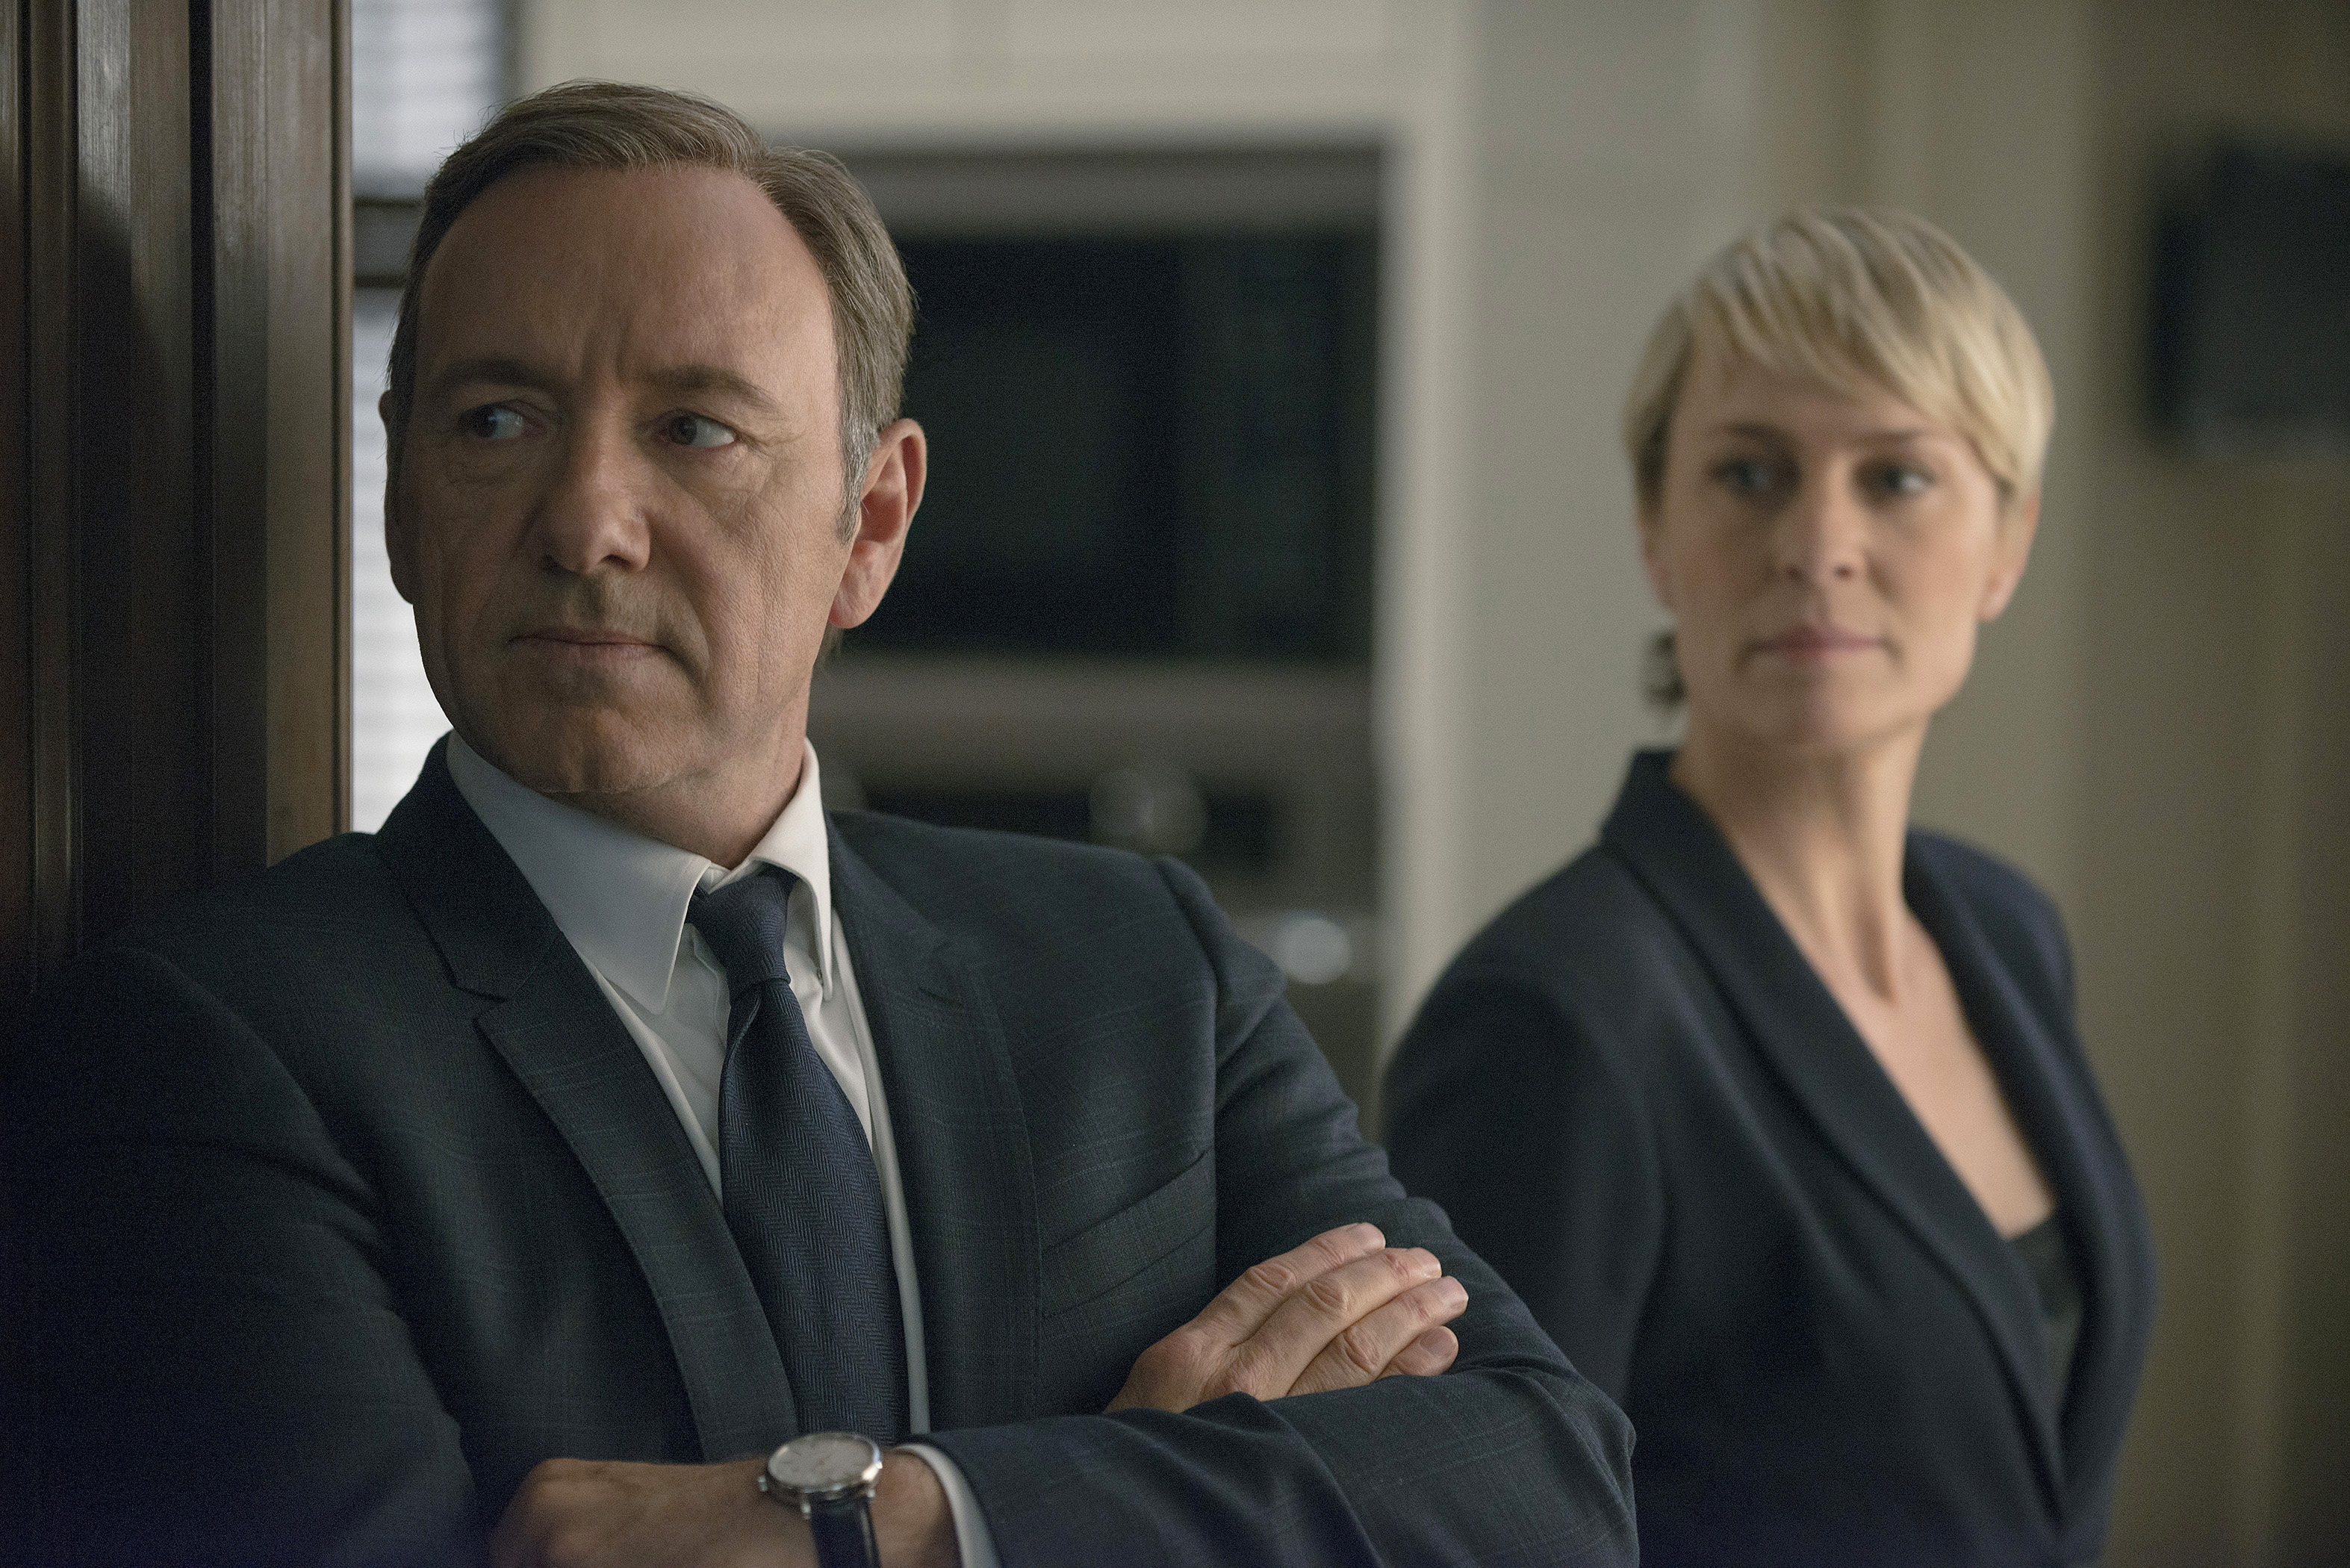 http://eftm.com.au/wp-content/uploads/2014/02/Kevin-Spacey-as-Frank-Underwood-Robin-Wright-as-Claire-Underwood-in-HoC-2-on-showcase.jpg